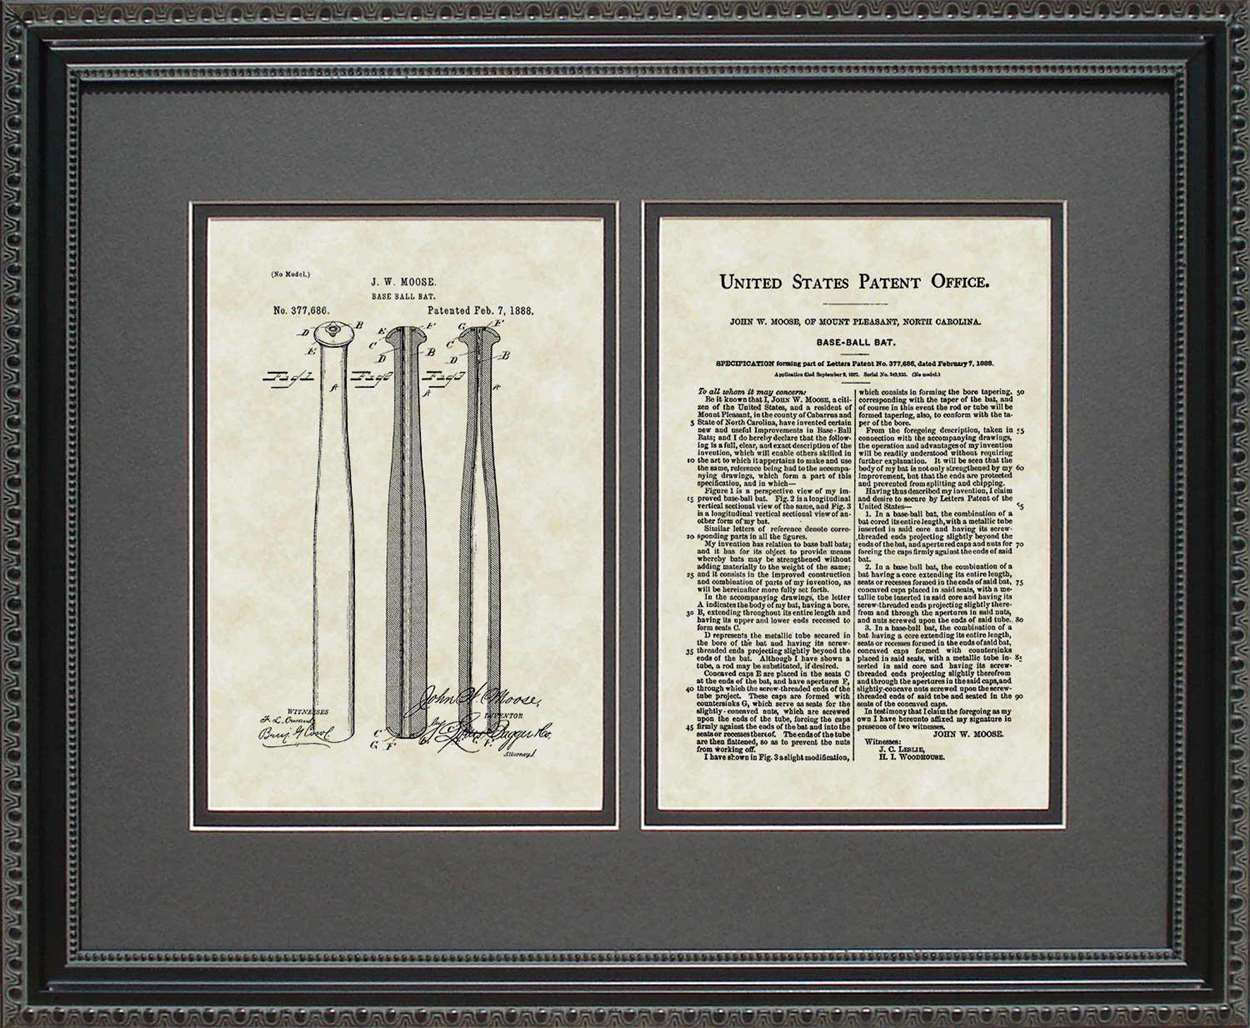 Baseball Bat Patent, Art & Copy, Moose, 1888, 16x20